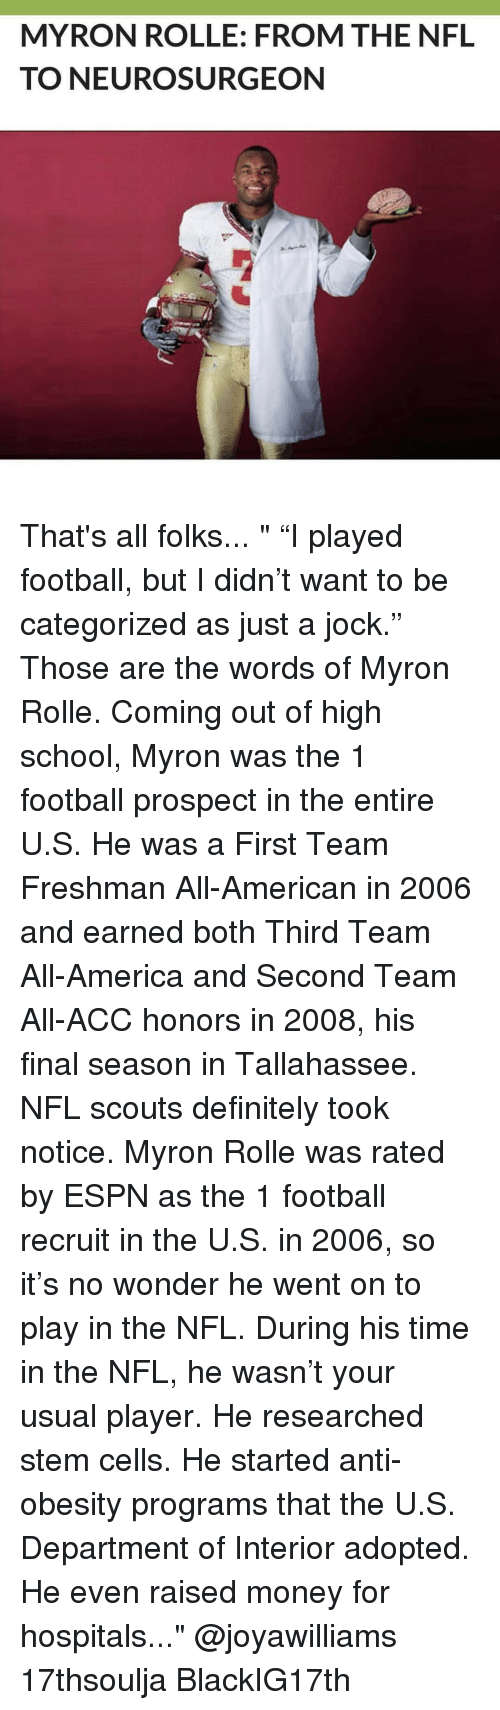 """Definitally: MYRON ROLLE: FROM THE NFL  TO NEURO SURGEON That's all folks... """" """"I played football, but I didn't want to be categorized as just a jock."""" Those are the words of Myron Rolle. Coming out of high school, Myron was the 1 football prospect in the entire U.S. He was a First Team Freshman All-American in 2006 and earned both Third Team All-America and Second Team All-ACC honors in 2008, his final season in Tallahassee. NFL scouts definitely took notice. Myron Rolle was rated by ESPN as the 1 football recruit in the U.S. in 2006, so it's no wonder he went on to play in the NFL. During his time in the NFL, he wasn't your usual player. He researched stem cells. He started anti-obesity programs that the U.S. Department of Interior adopted. He even raised money for hospitals..."""" @joyawilliams 17thsoulja BlackIG17th"""